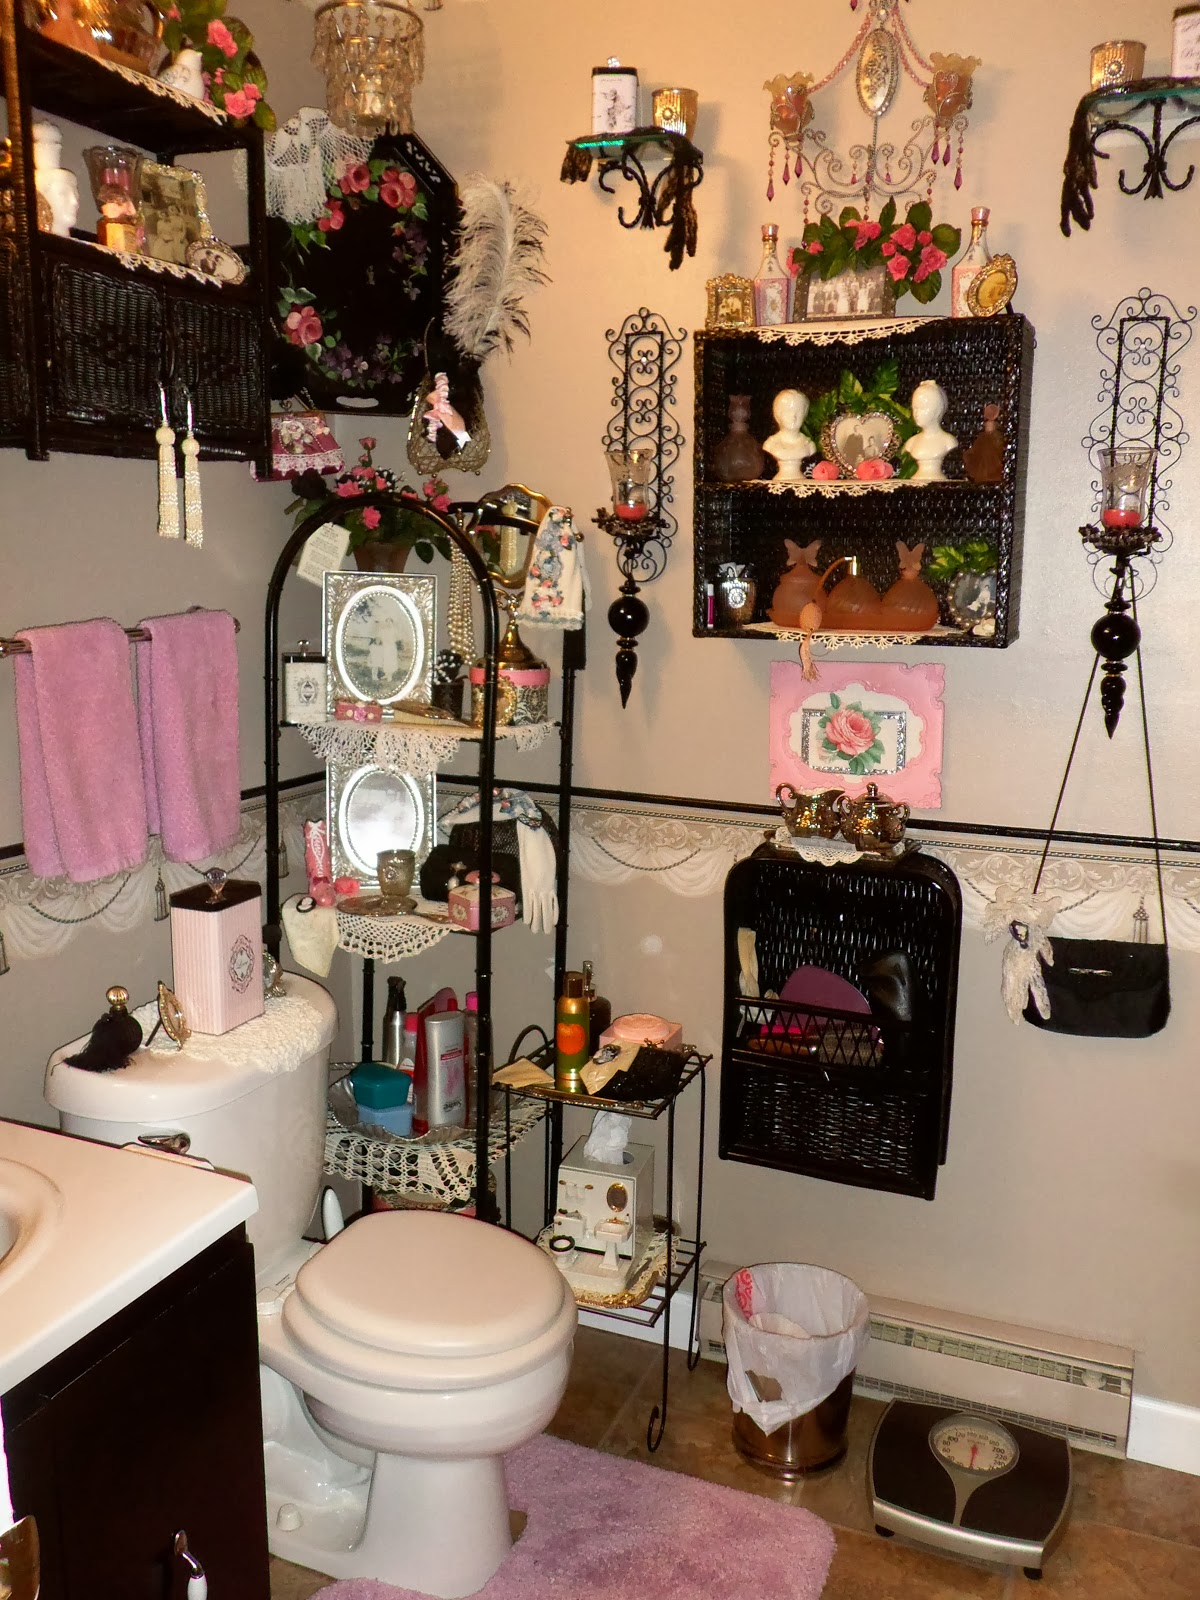 ... -DABBLE BLOG: The ReModel, Part 3, Kitchen and Powder Room Reveal